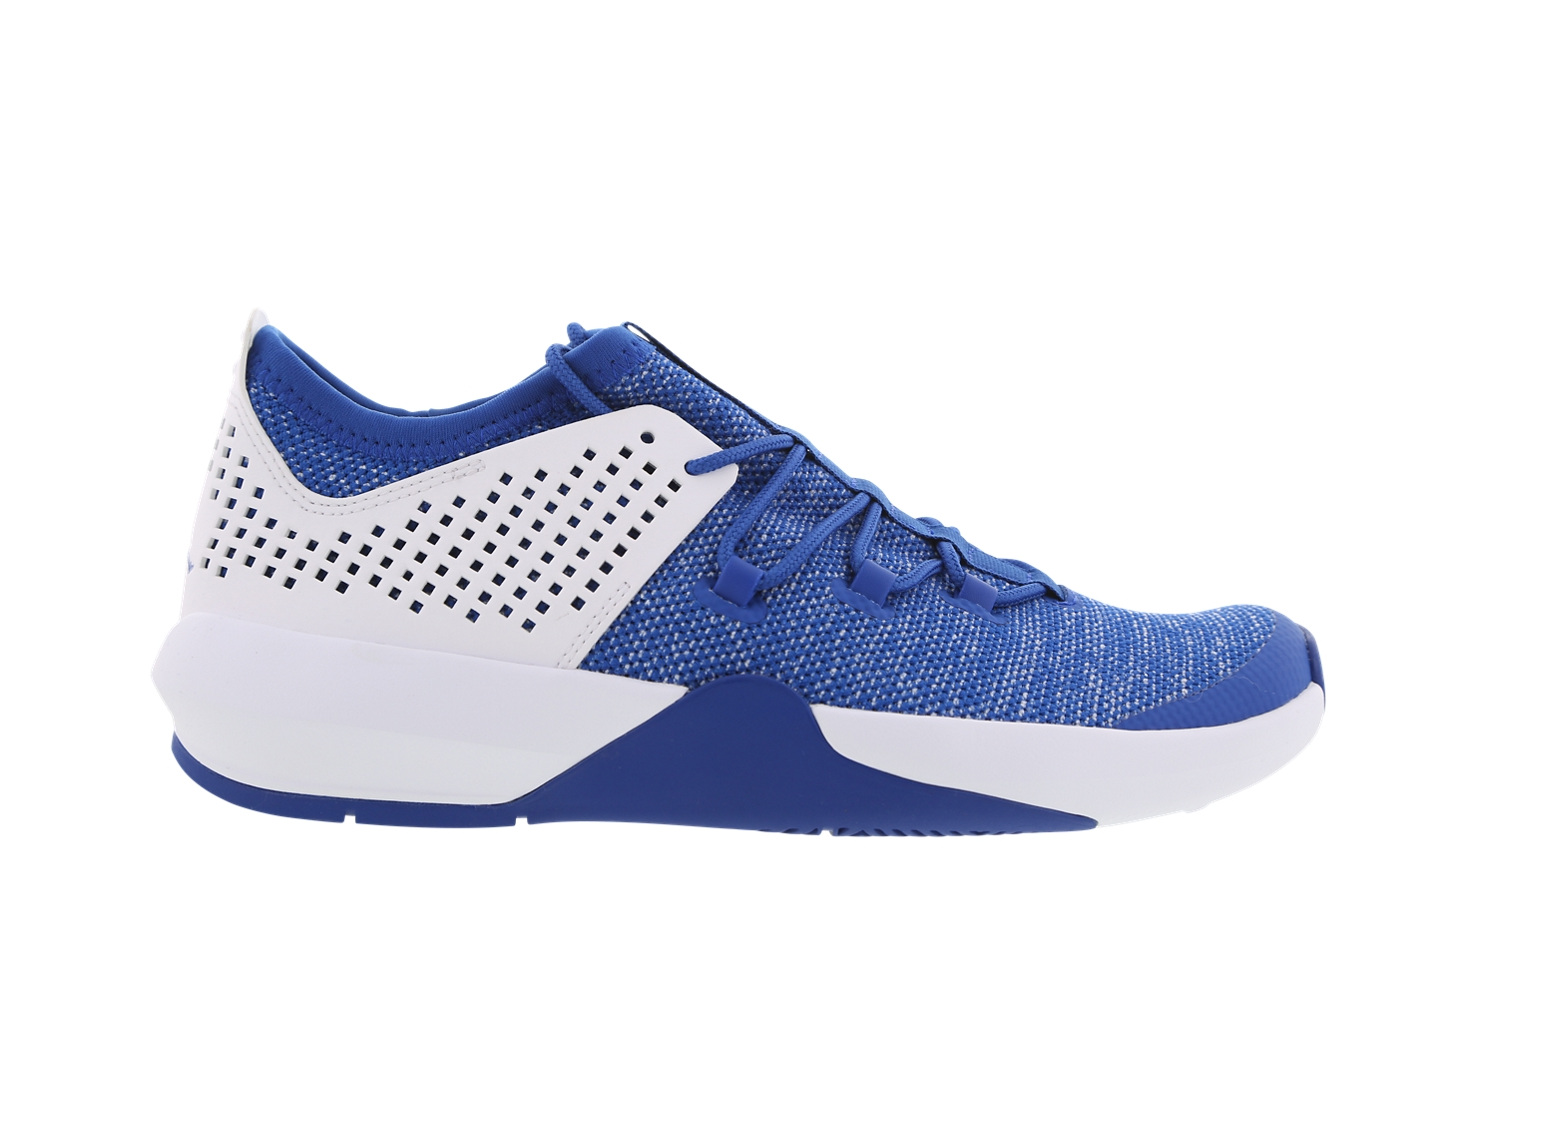 Mens NIKE JORDAN EXPRESS Team Royal Trainers Trainers Trainers 897988 400 9d7612